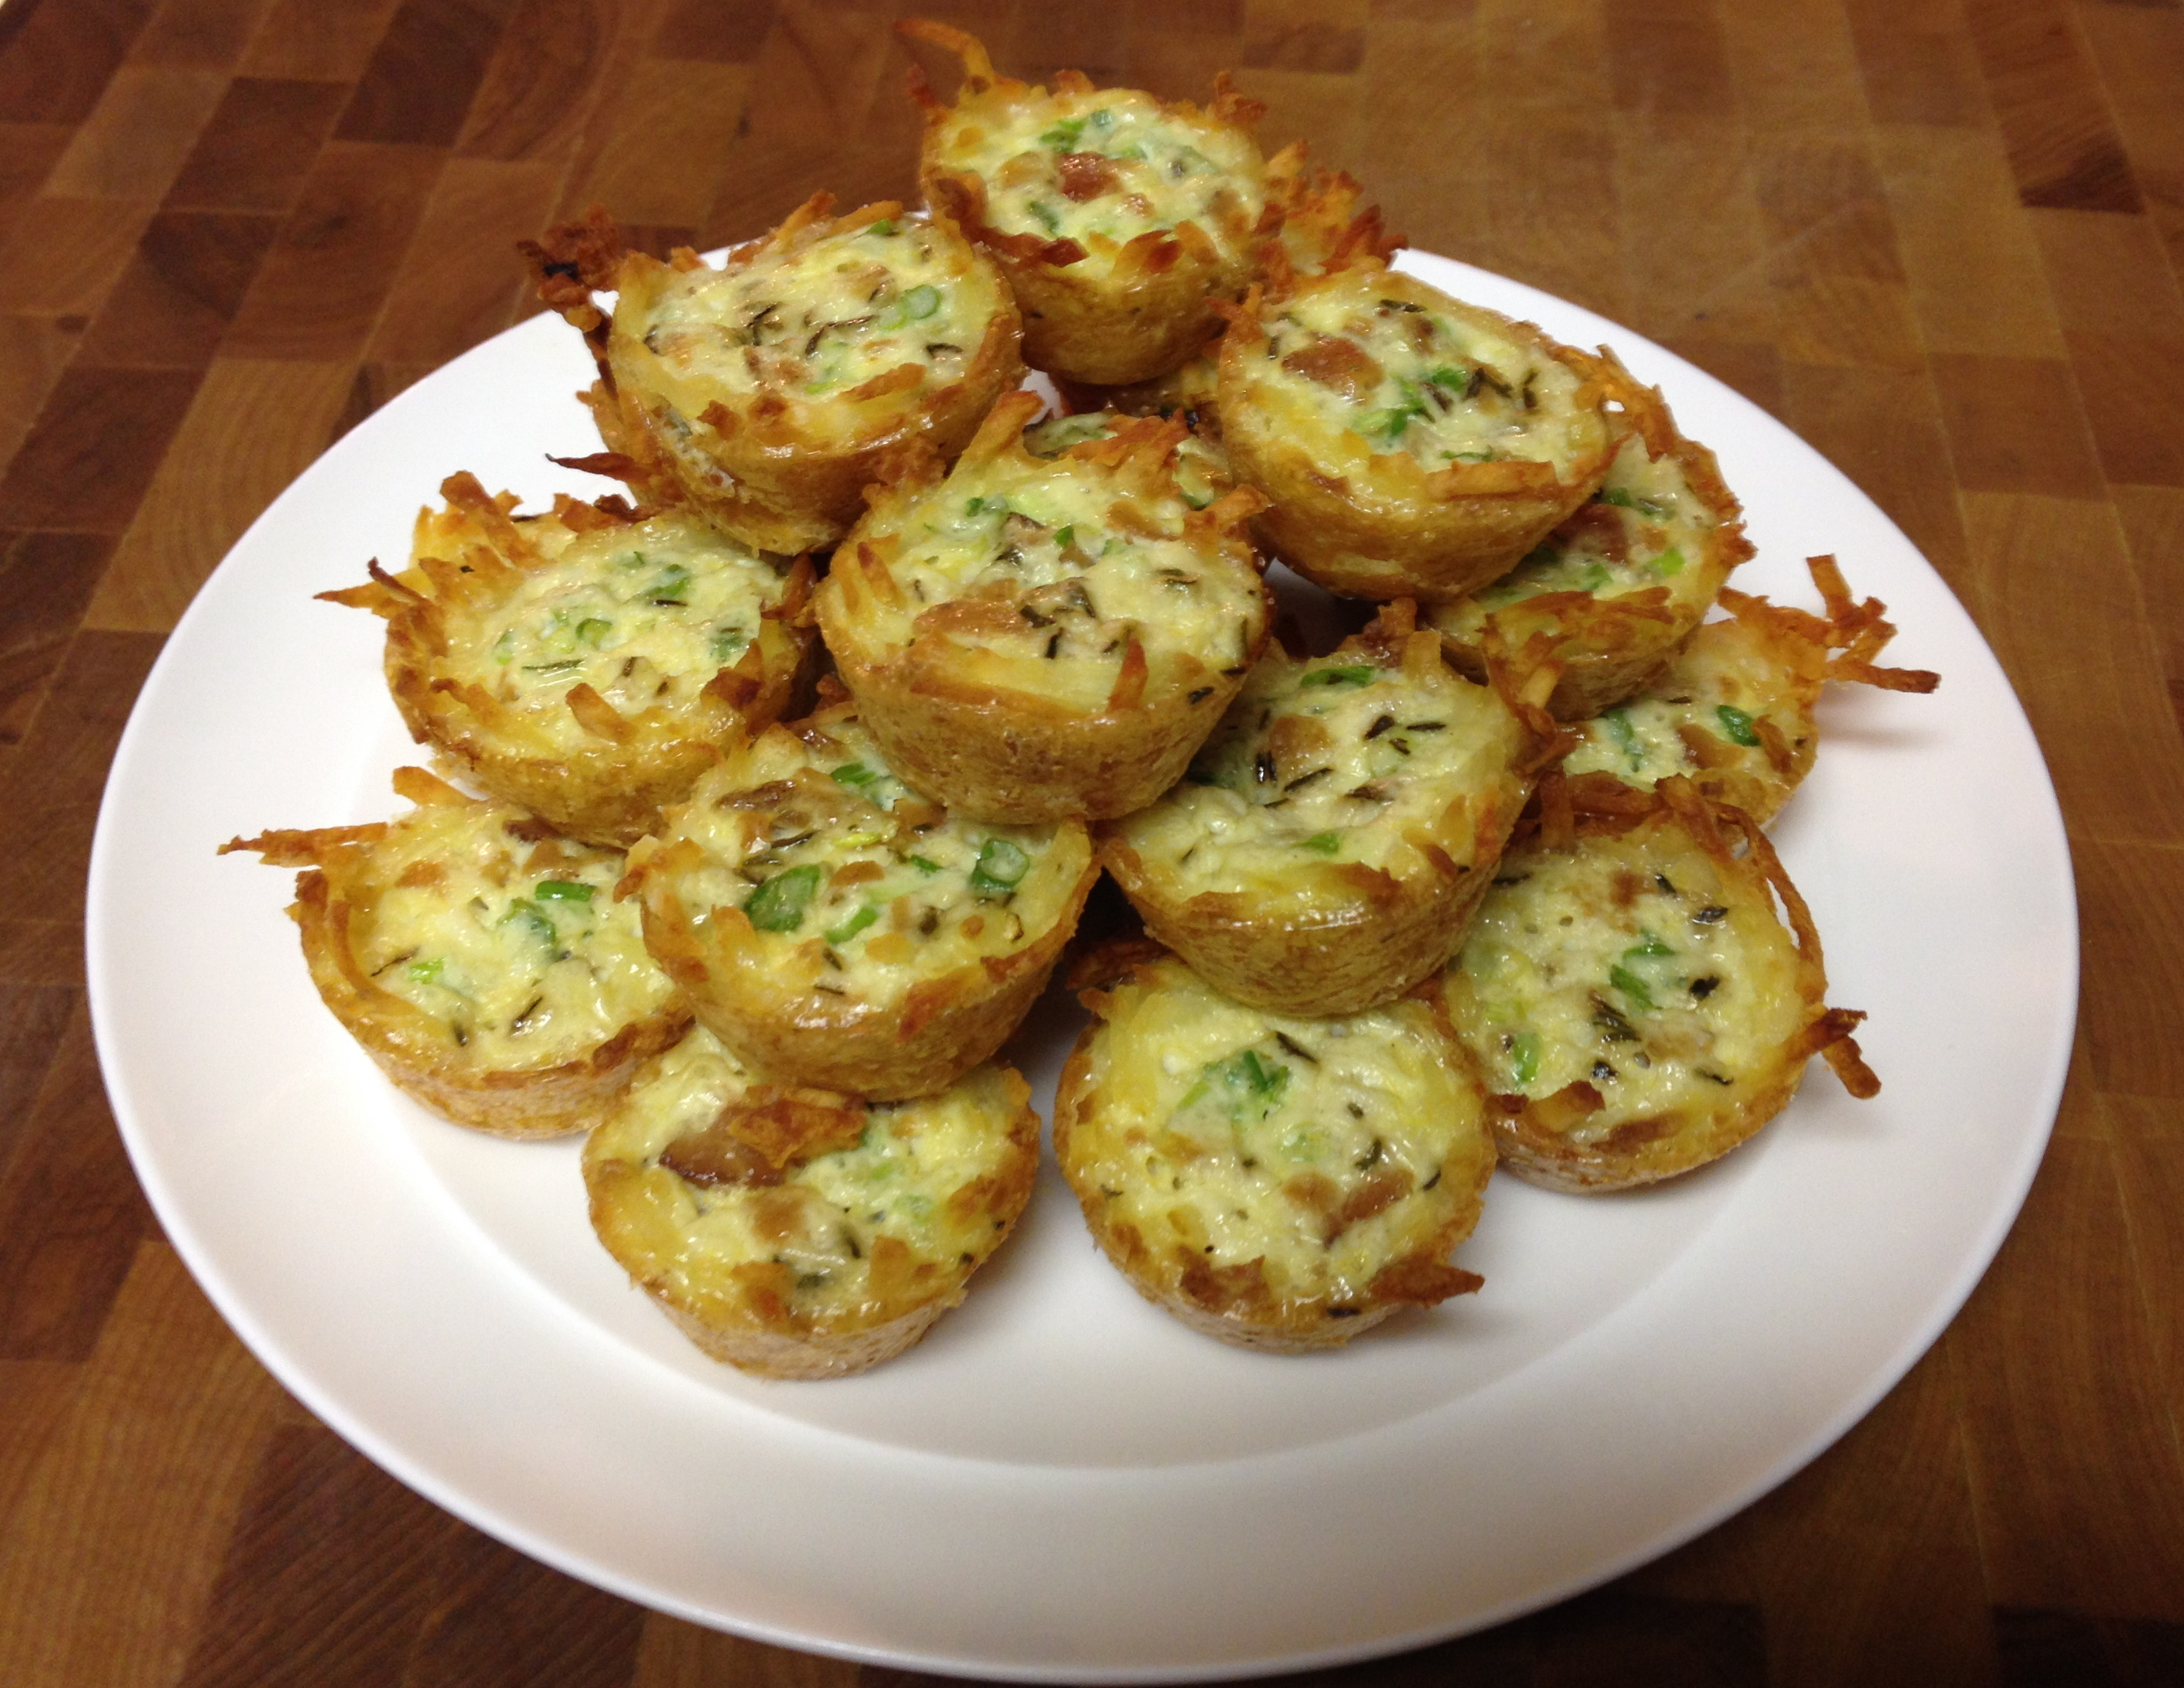 No Cheese Mini Quiches #glutenfree - The Weekly Menu